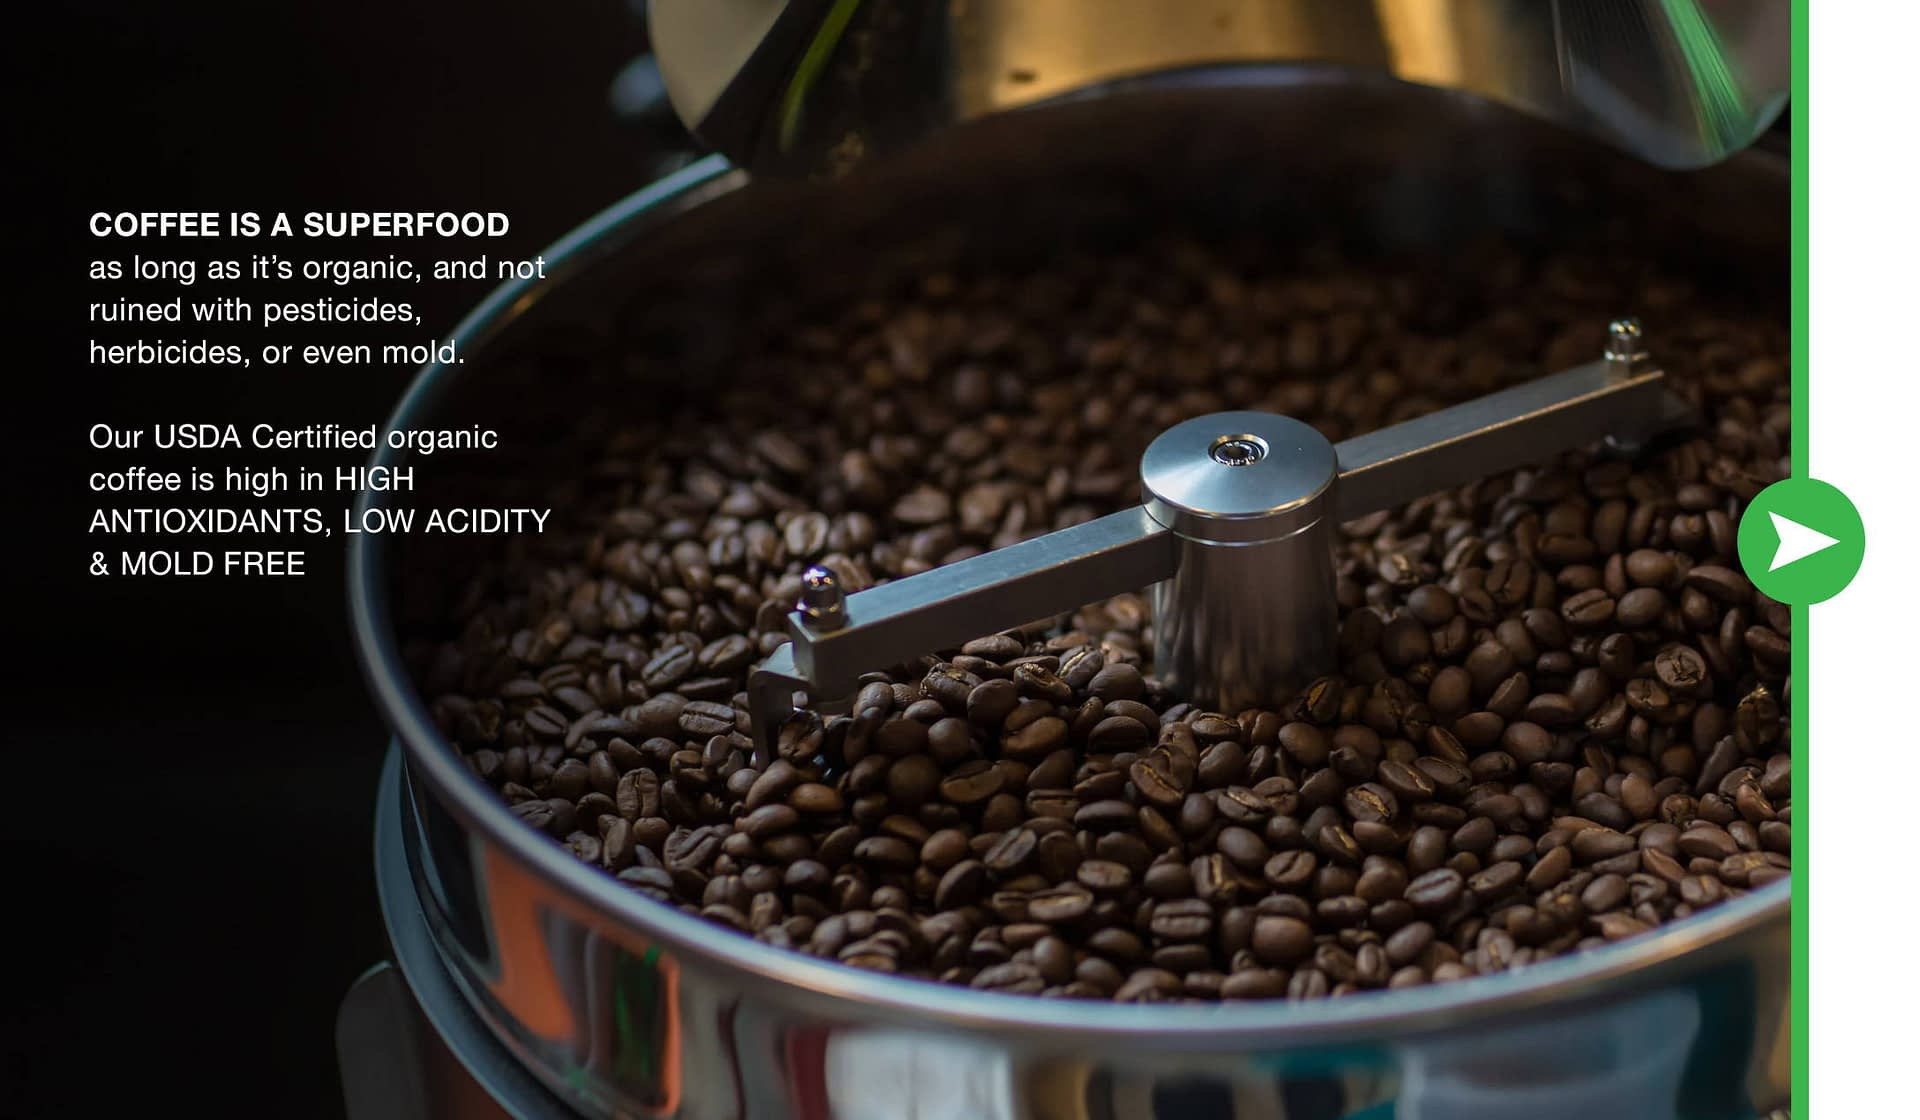 coffee is a superfood